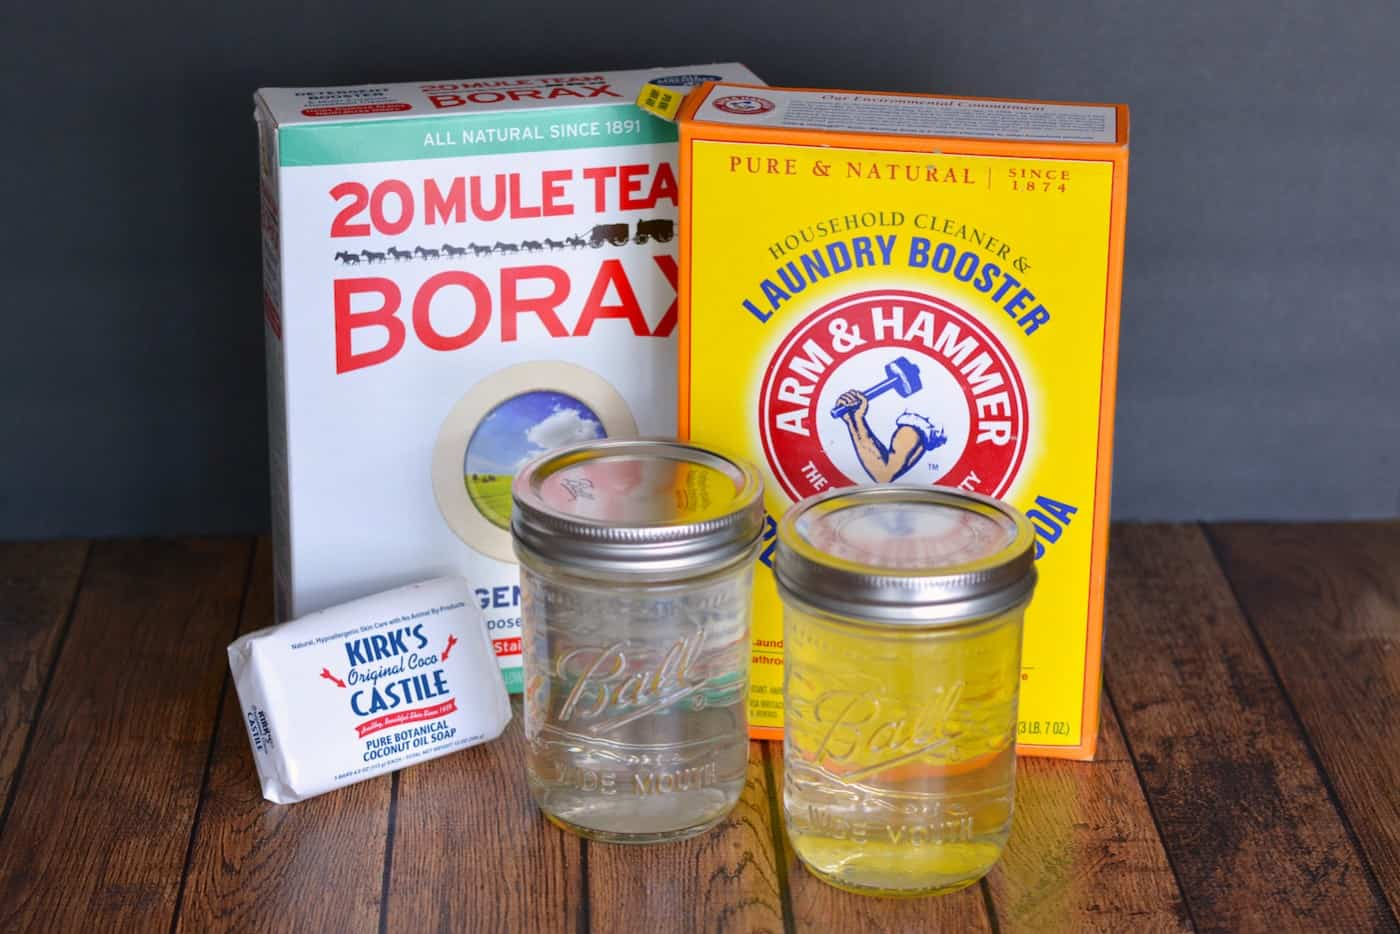 Make this easy (and budget friendly) homemade laundry detergent recipe - it's liquid! No chemicals, dyes, or additives and it's perfect for sensitive skin.